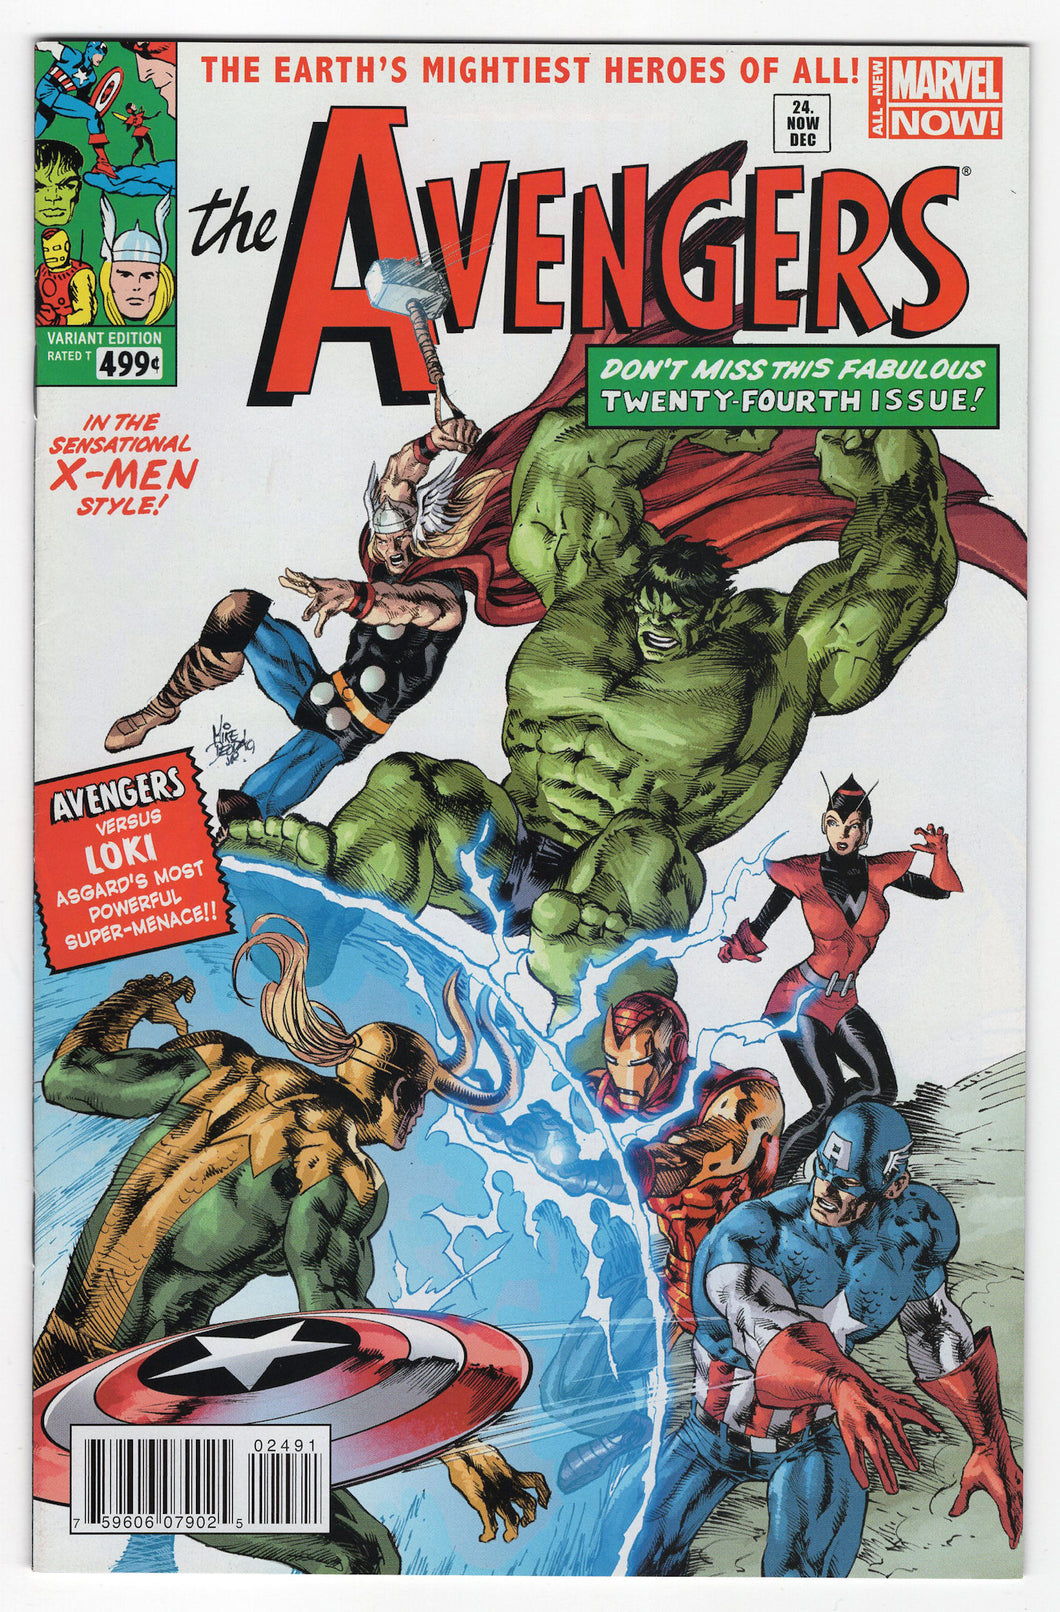 Avengers #24 Mike Deodato Jr. Variant Front Cover